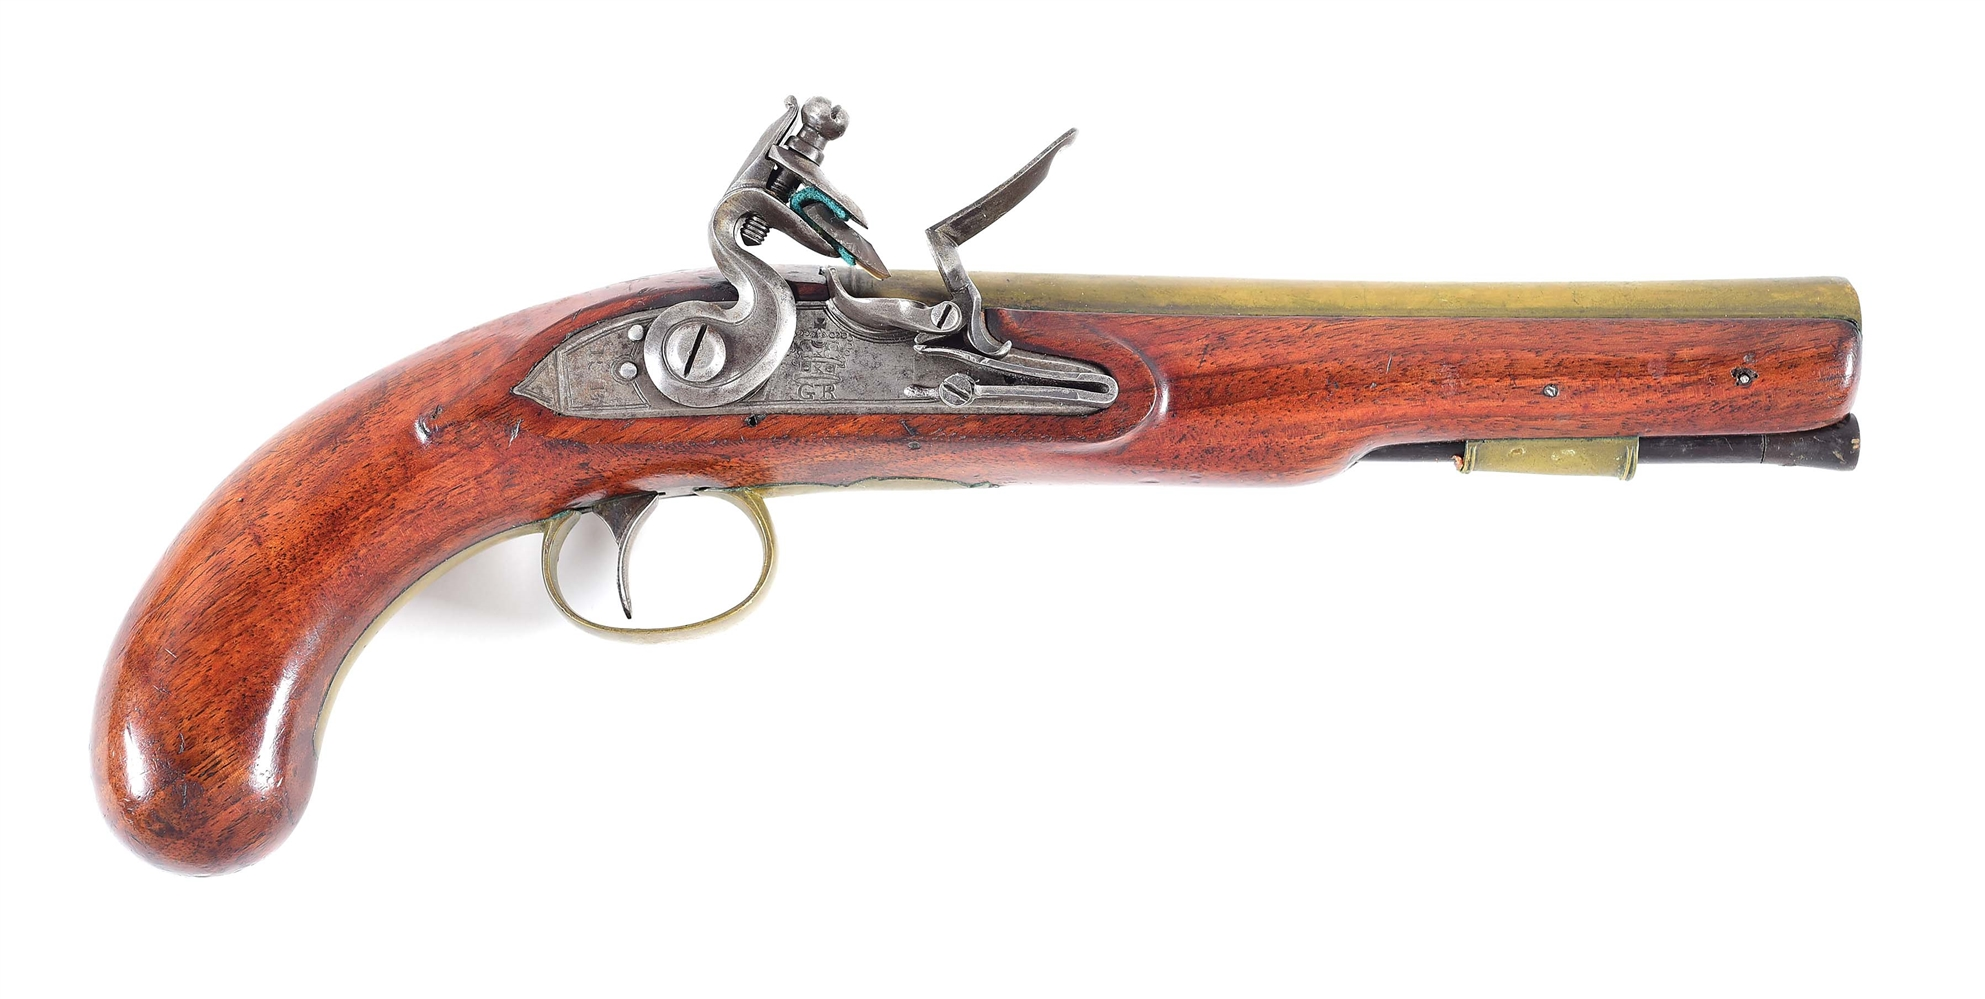 (A) A .65 CALIBER BRASS BARREL FLINTLOCK PISTOL, LIKELY BRITISH.